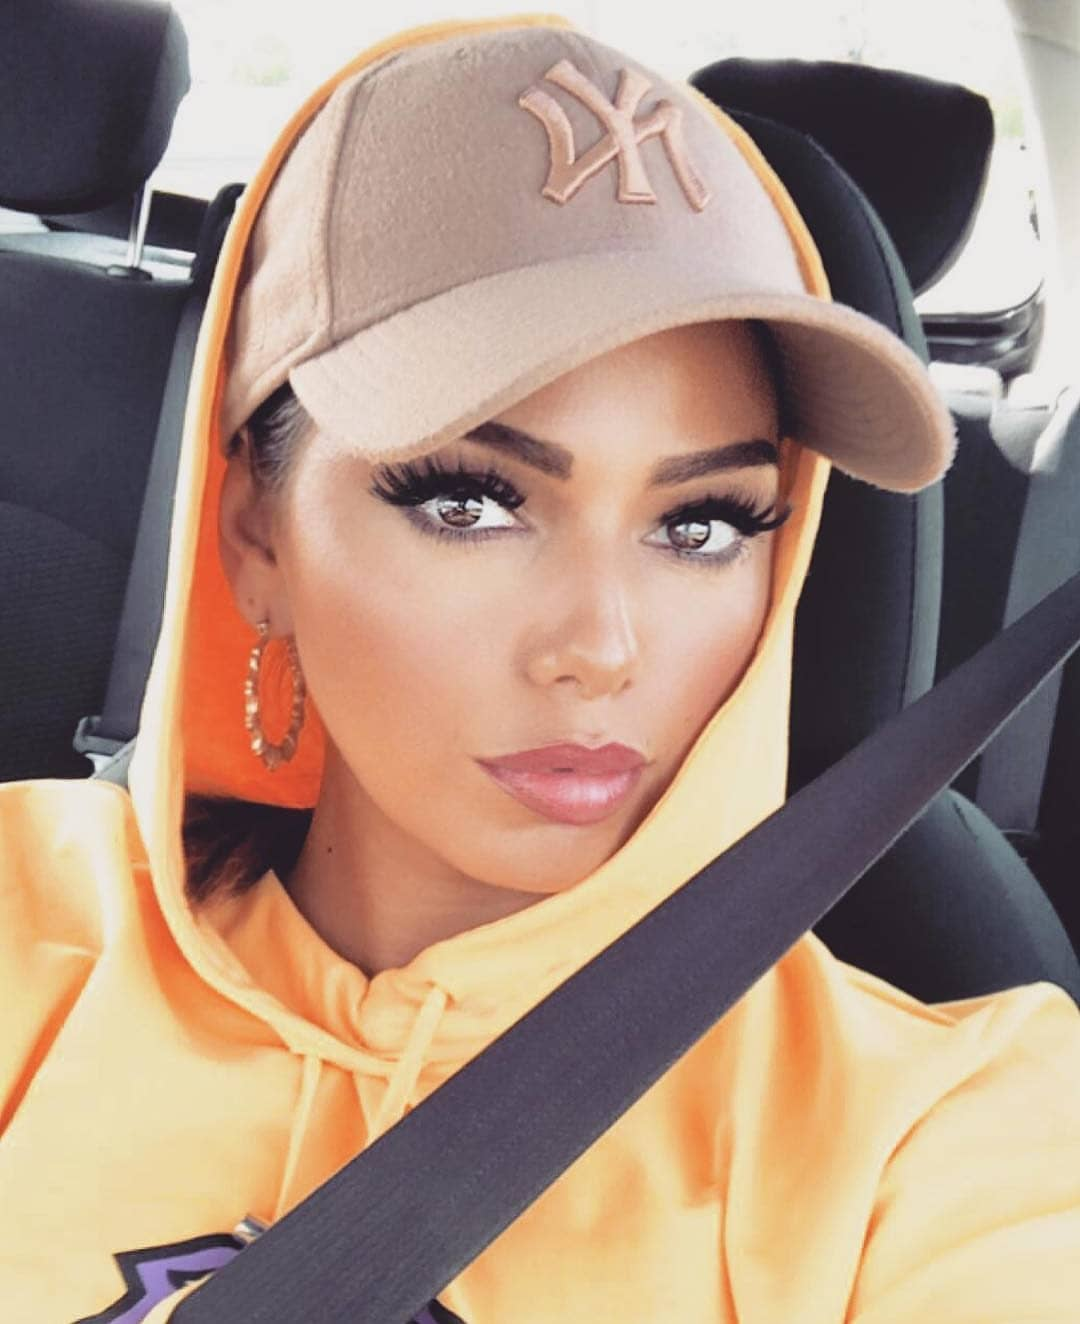 Camel Baseball Cap With Orange Hoodie For Casual Summer Road Trips 2020